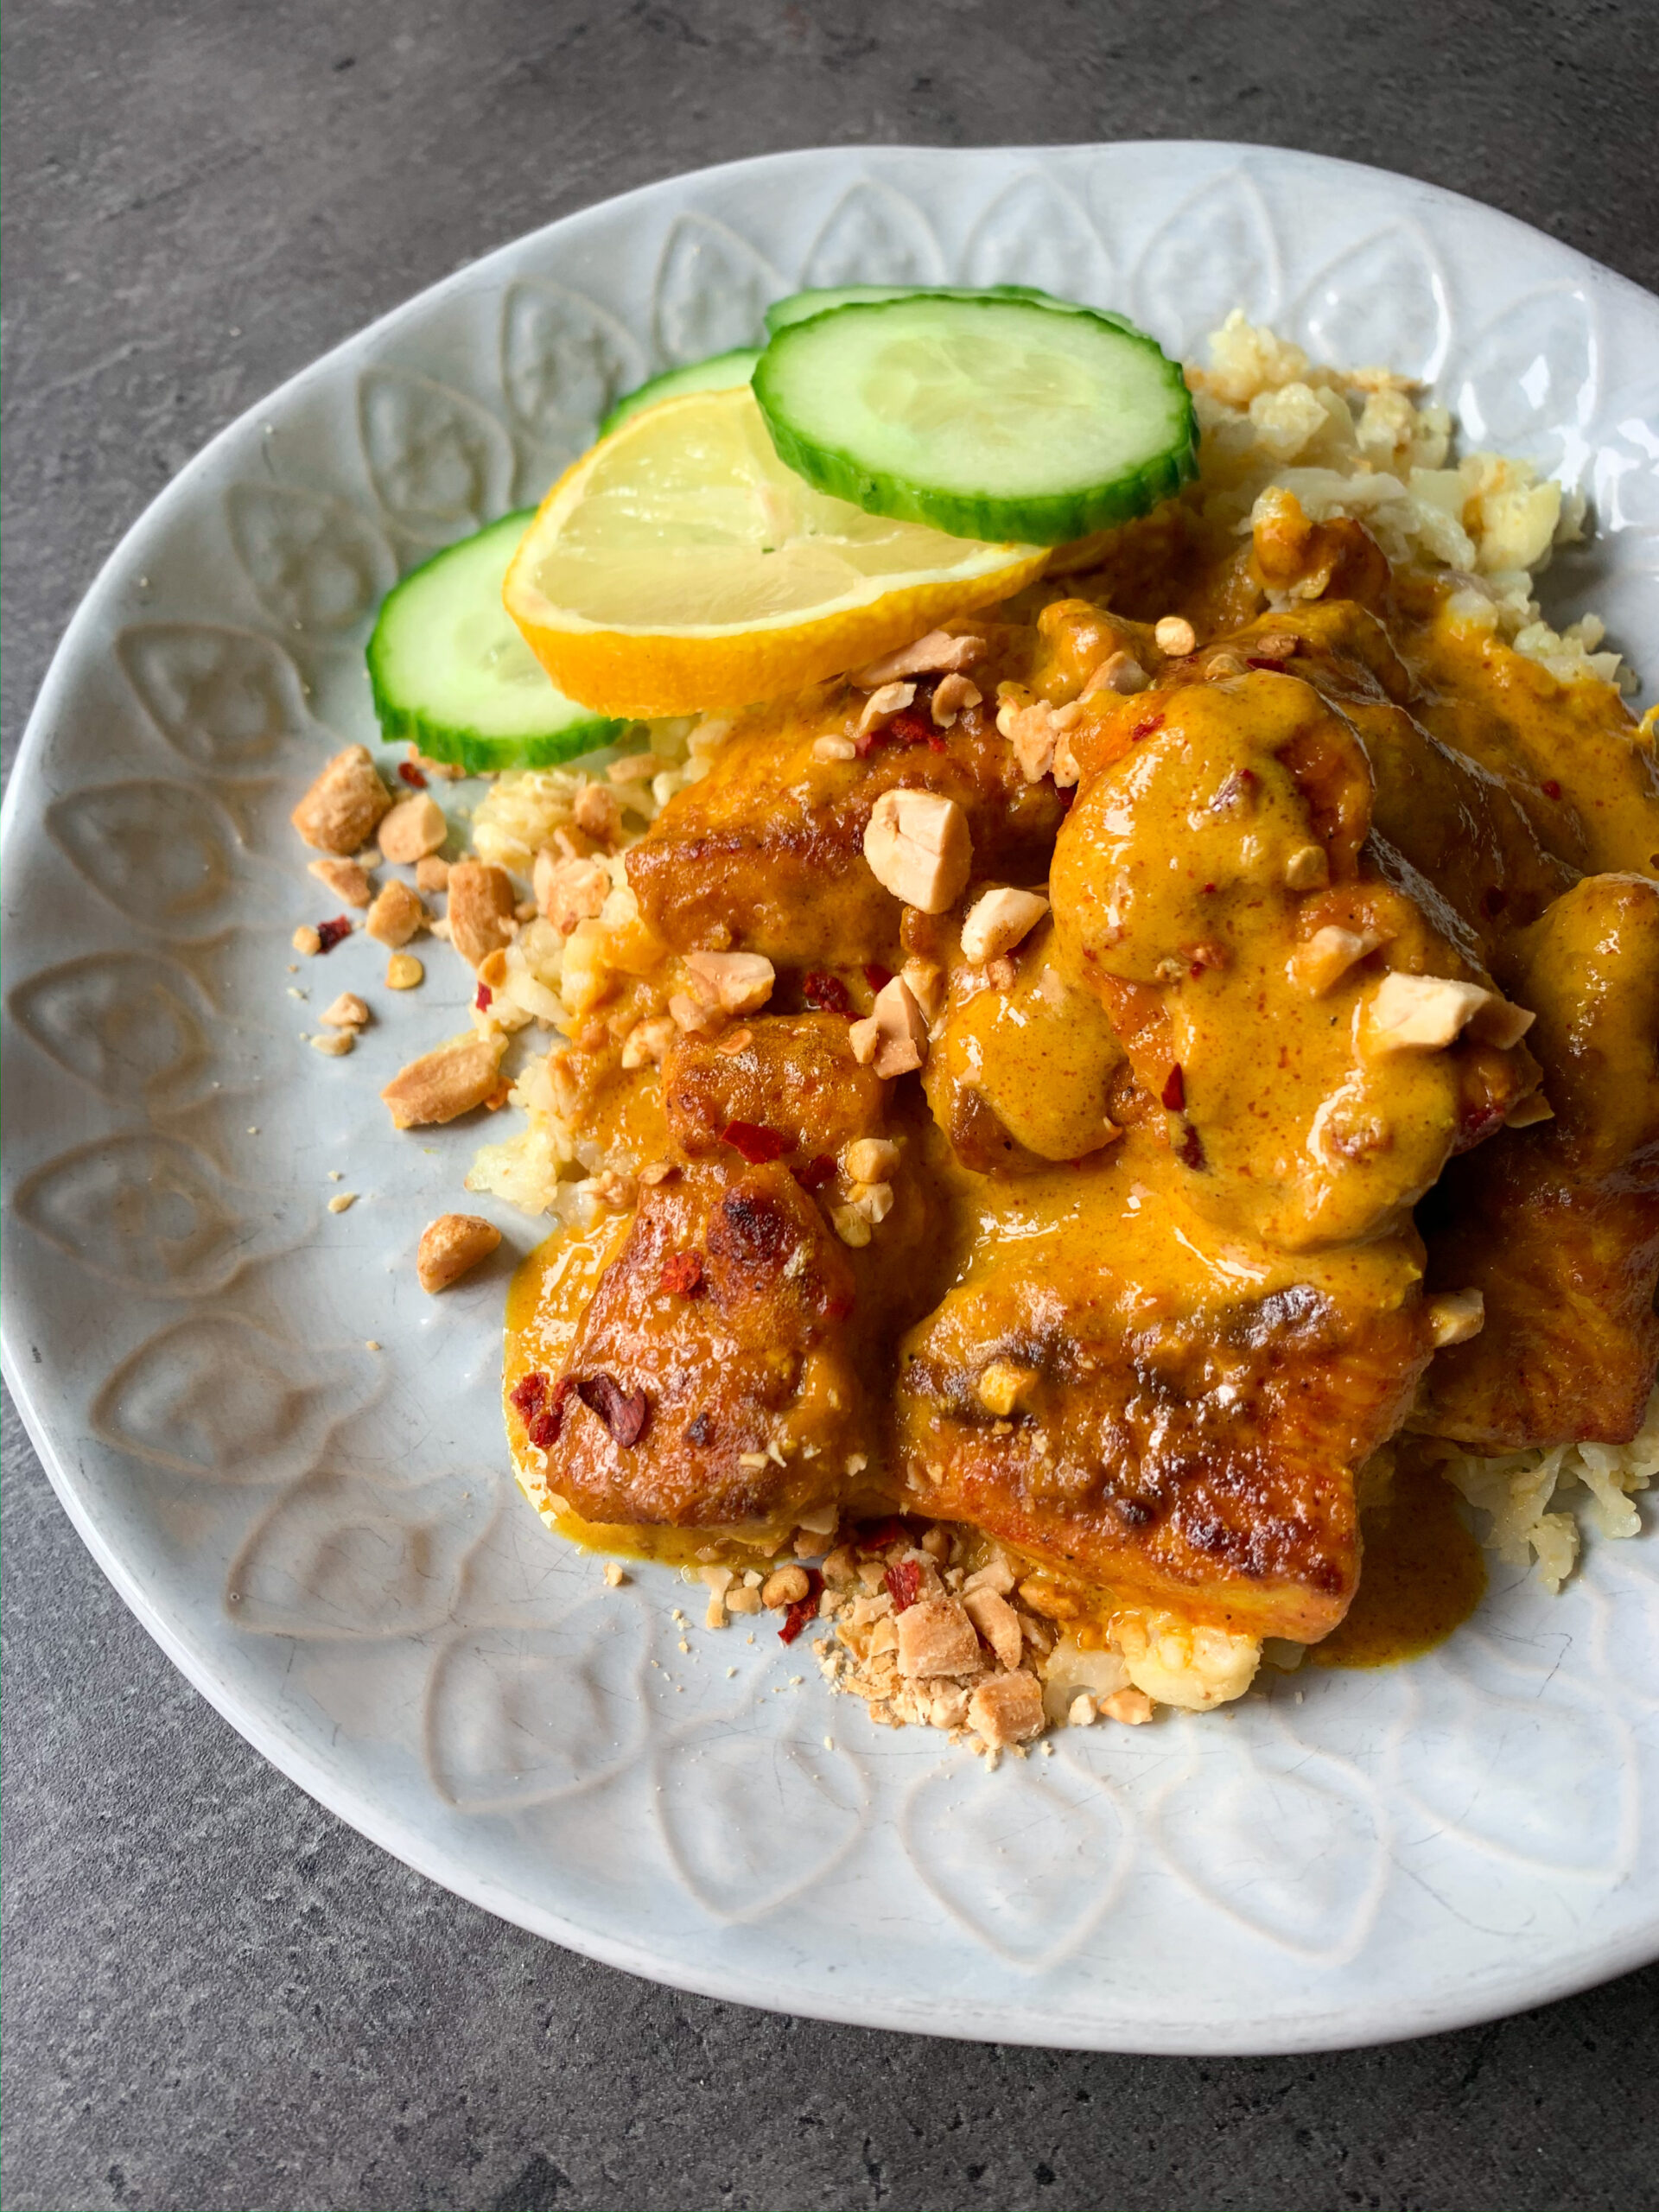 Picture of chicken with peanut sauce recipe in a plate with riced cauliflower